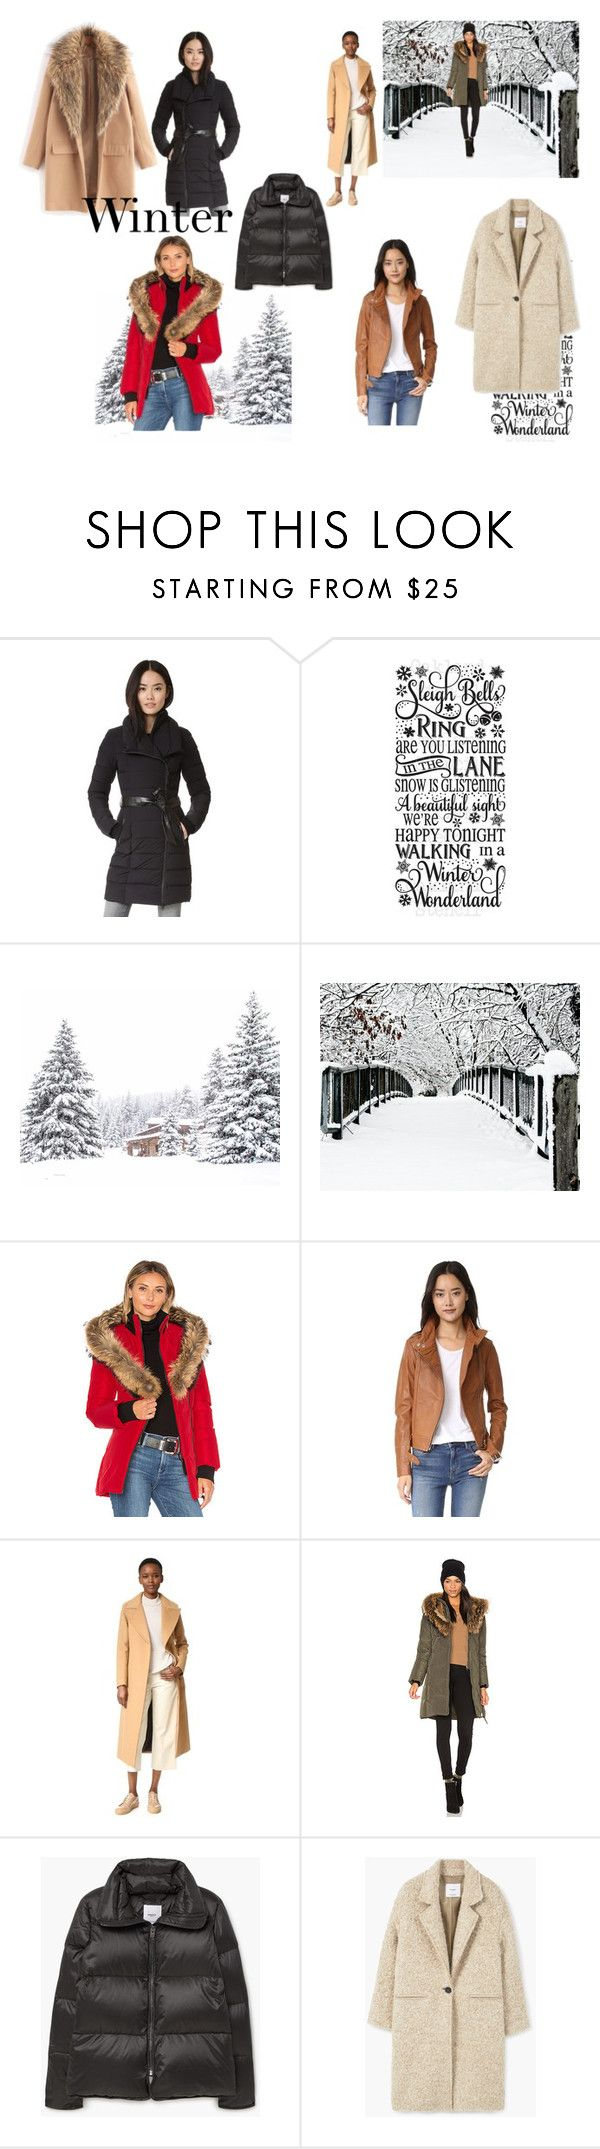 """Winter"" by aseval ❤ liked on Polyvore featuring Mackage, MANGO, trend, women and pvstyleinsider"